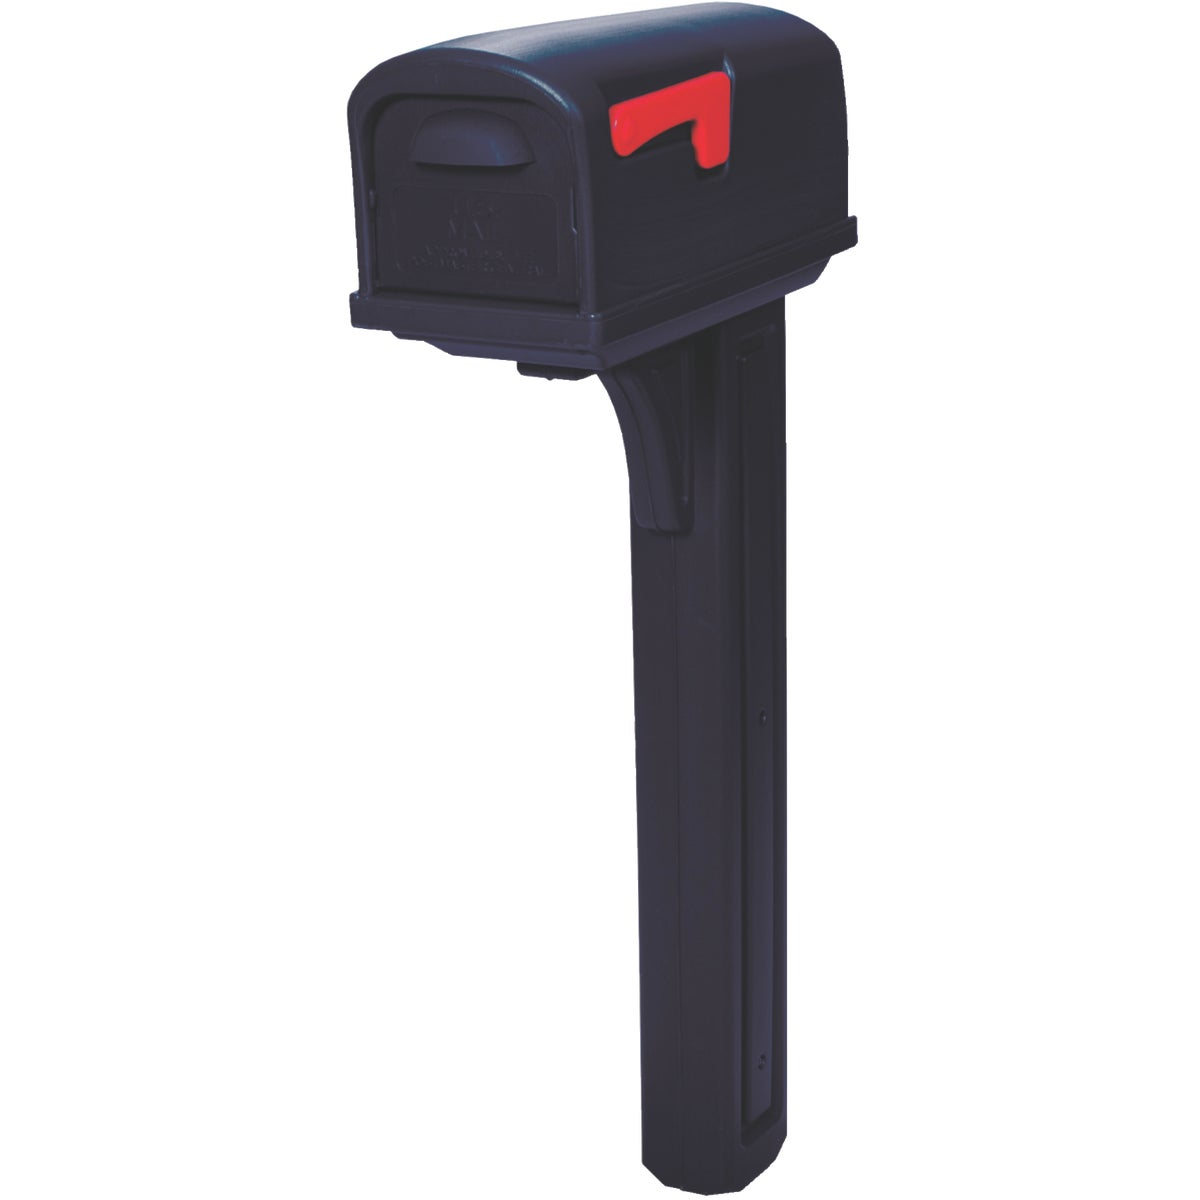 BLACK COMBO MAILBOX - CL10000B by Solar Group